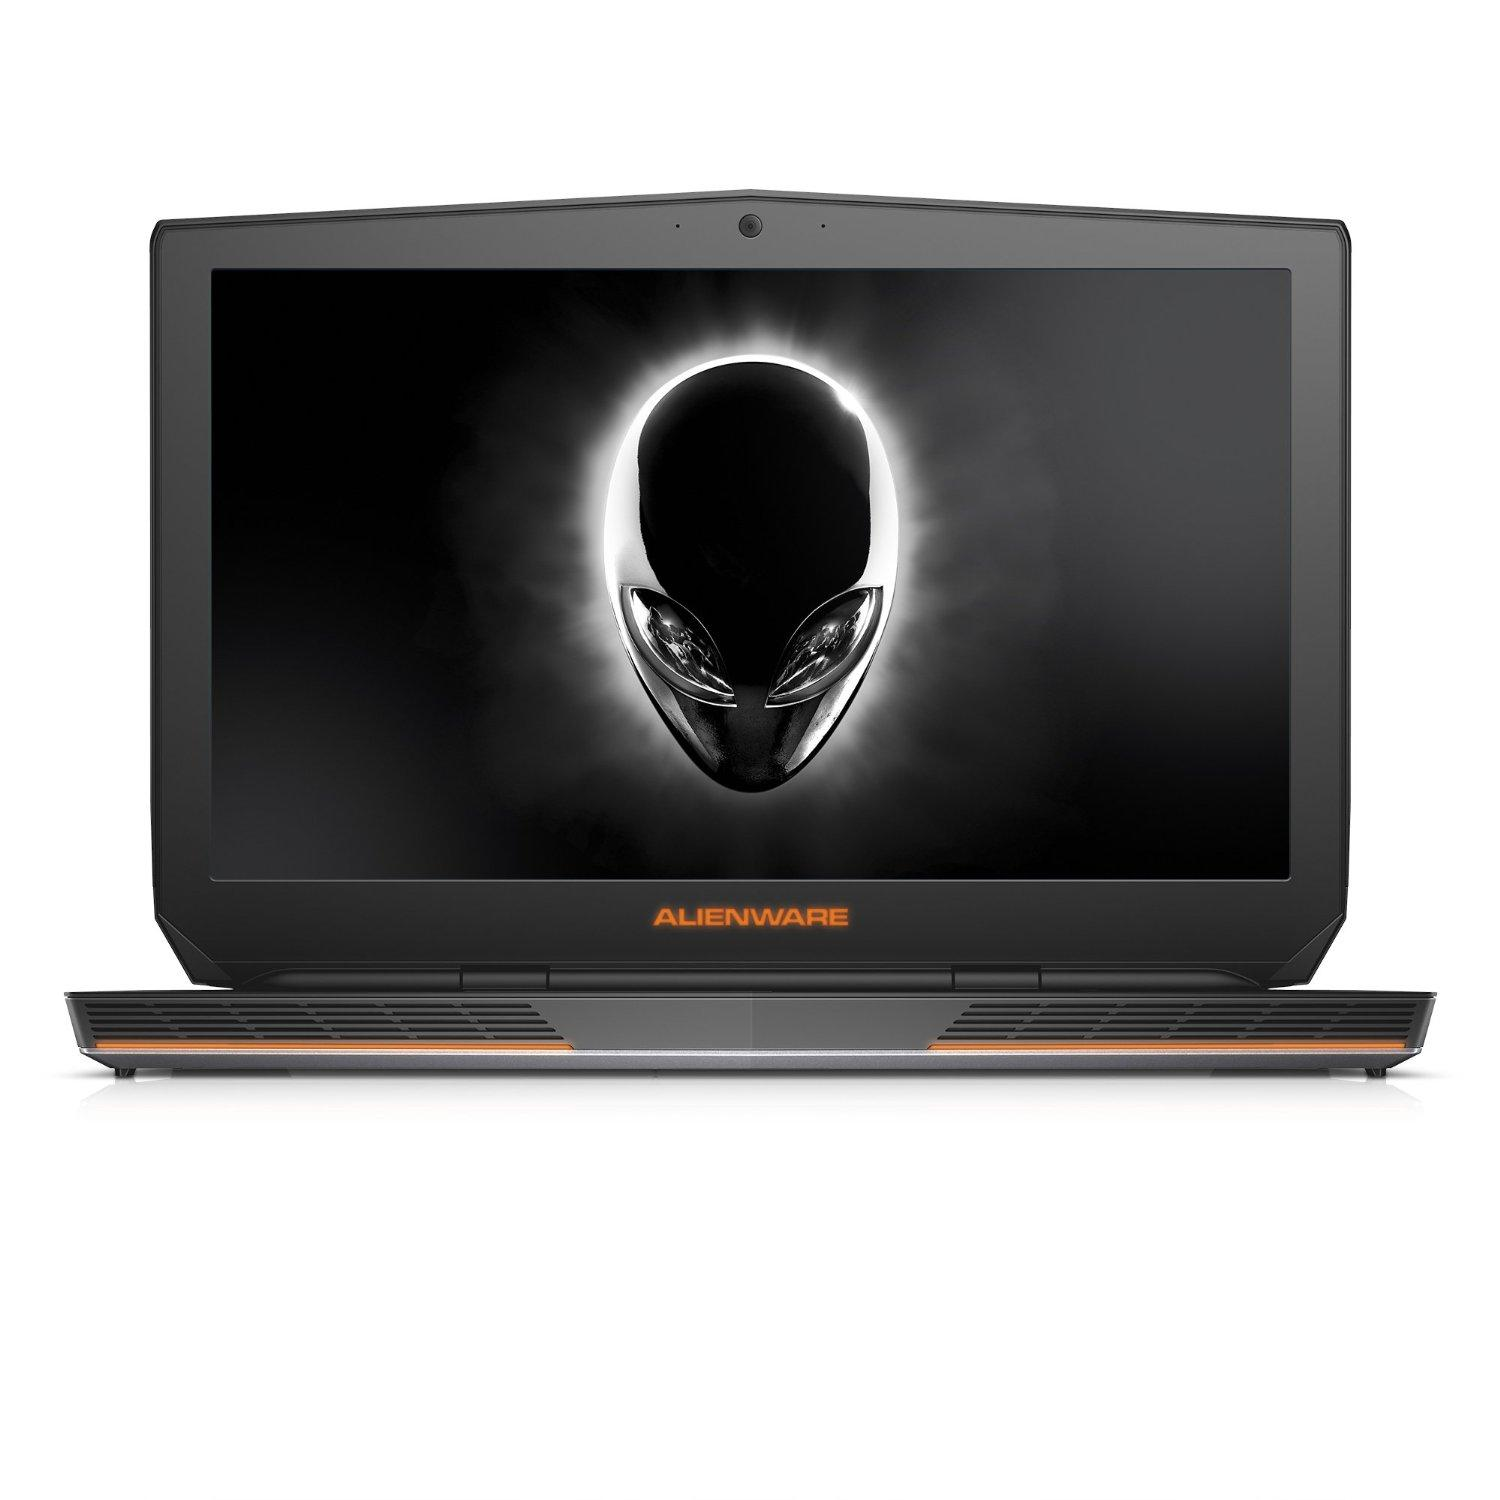 $2068.89 Alienware AW17R3-8342SLV 17.3 Inch UHD Laptop (6th Generation Intel Core i7, 16 GB RAM, 1 TB HDD + 256 GB SSD) NVIDIA GeForce GTX 980M